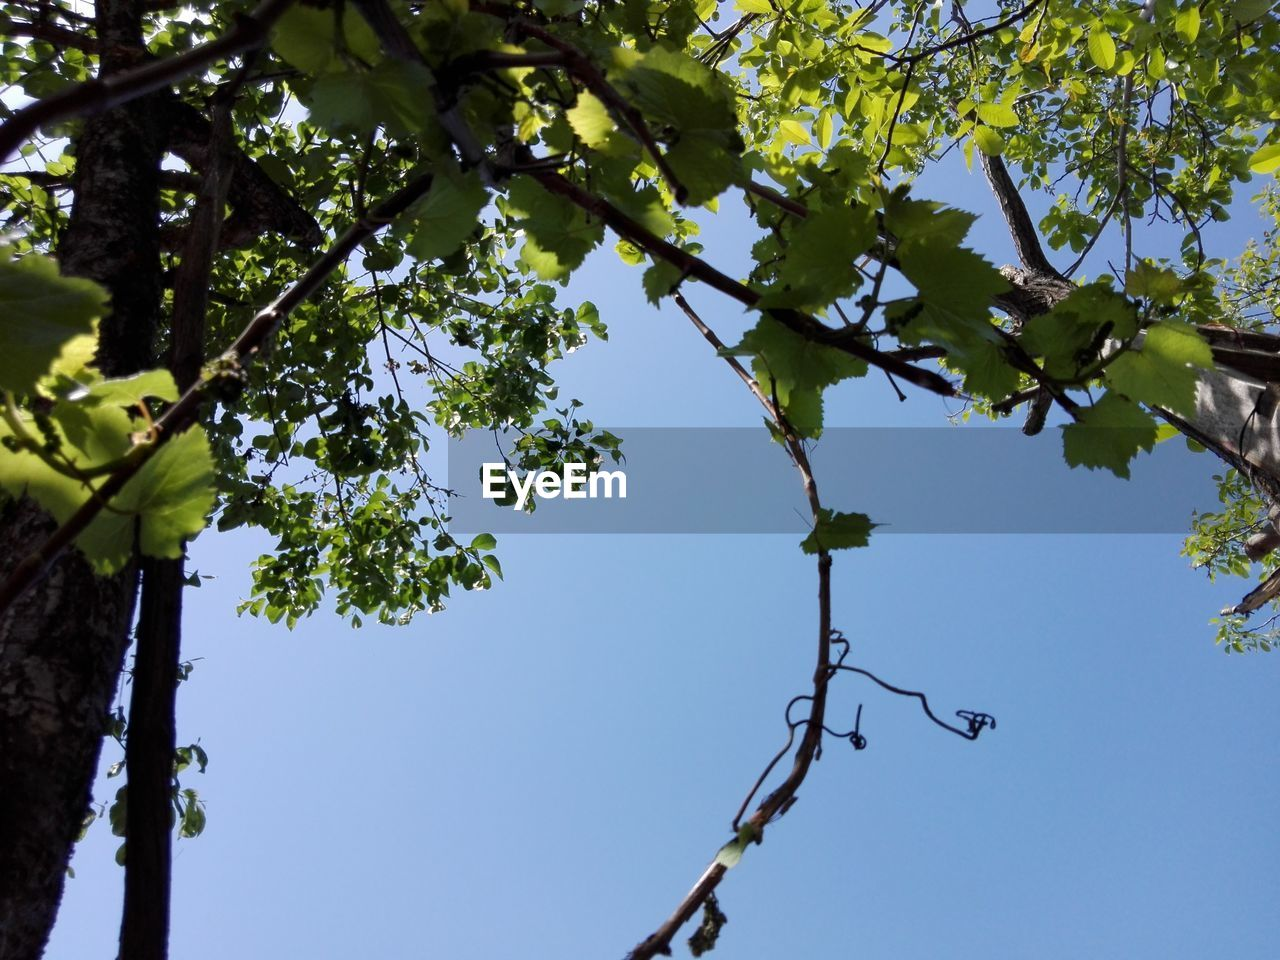 tree, low angle view, plant, sky, branch, growth, nature, day, plant part, no people, leaf, clear sky, beauty in nature, green color, outdoors, sunlight, tranquility, blue, tree trunk, trunk